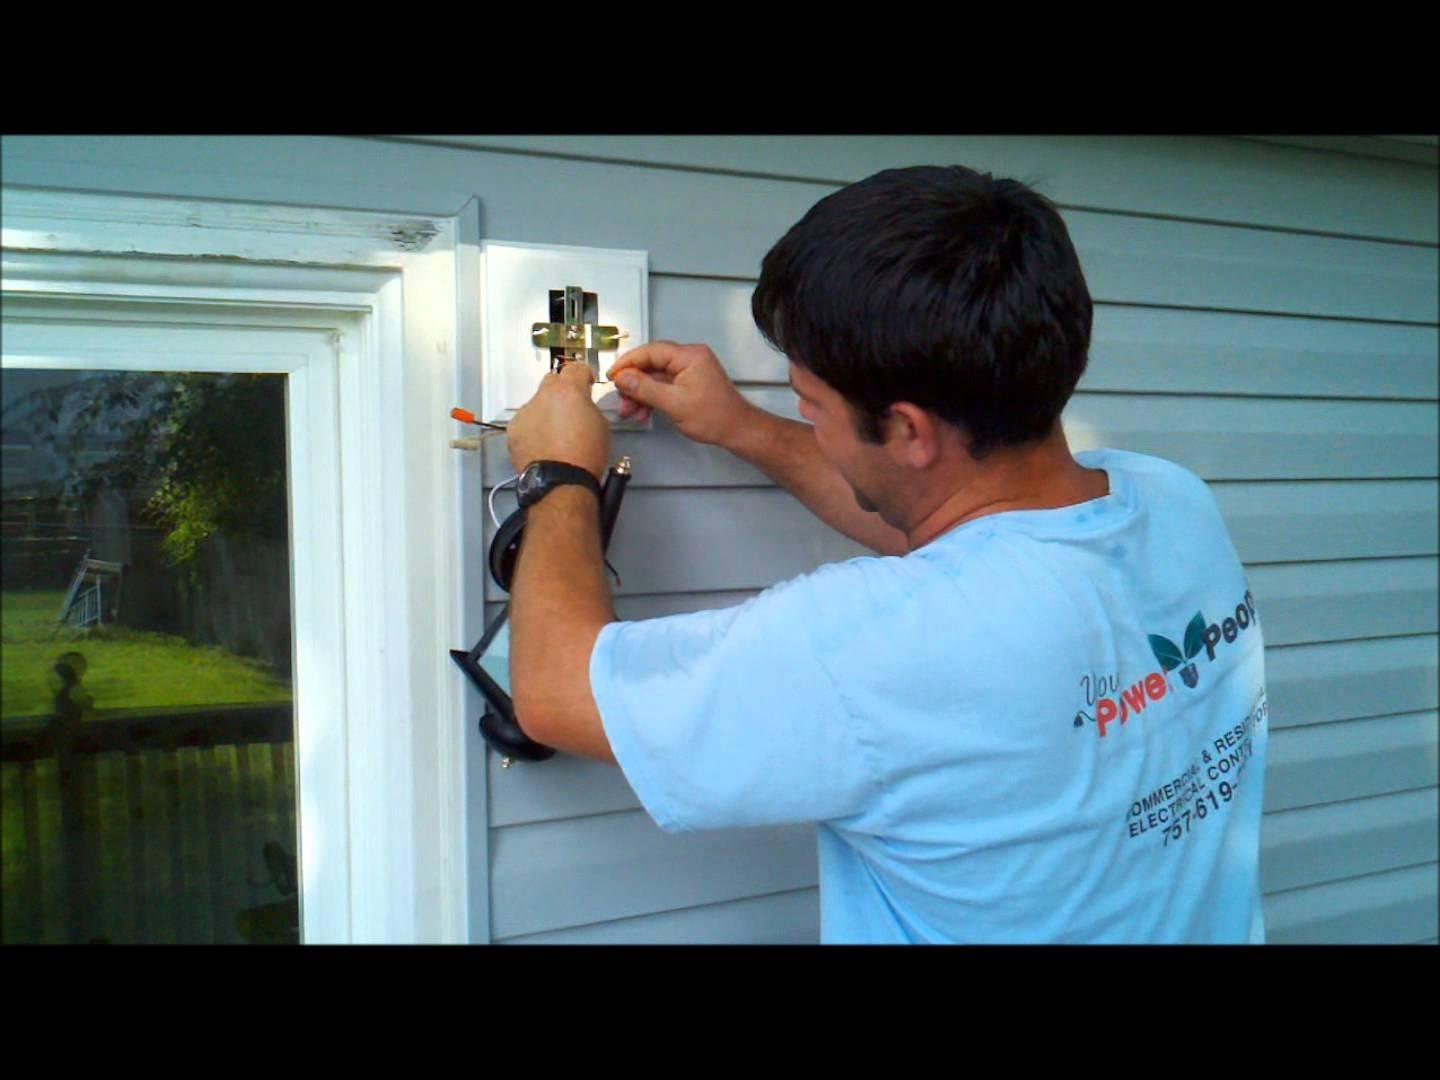 Installing Exterior Home Depot Or Lowes Light Fixture (#8 of 15)